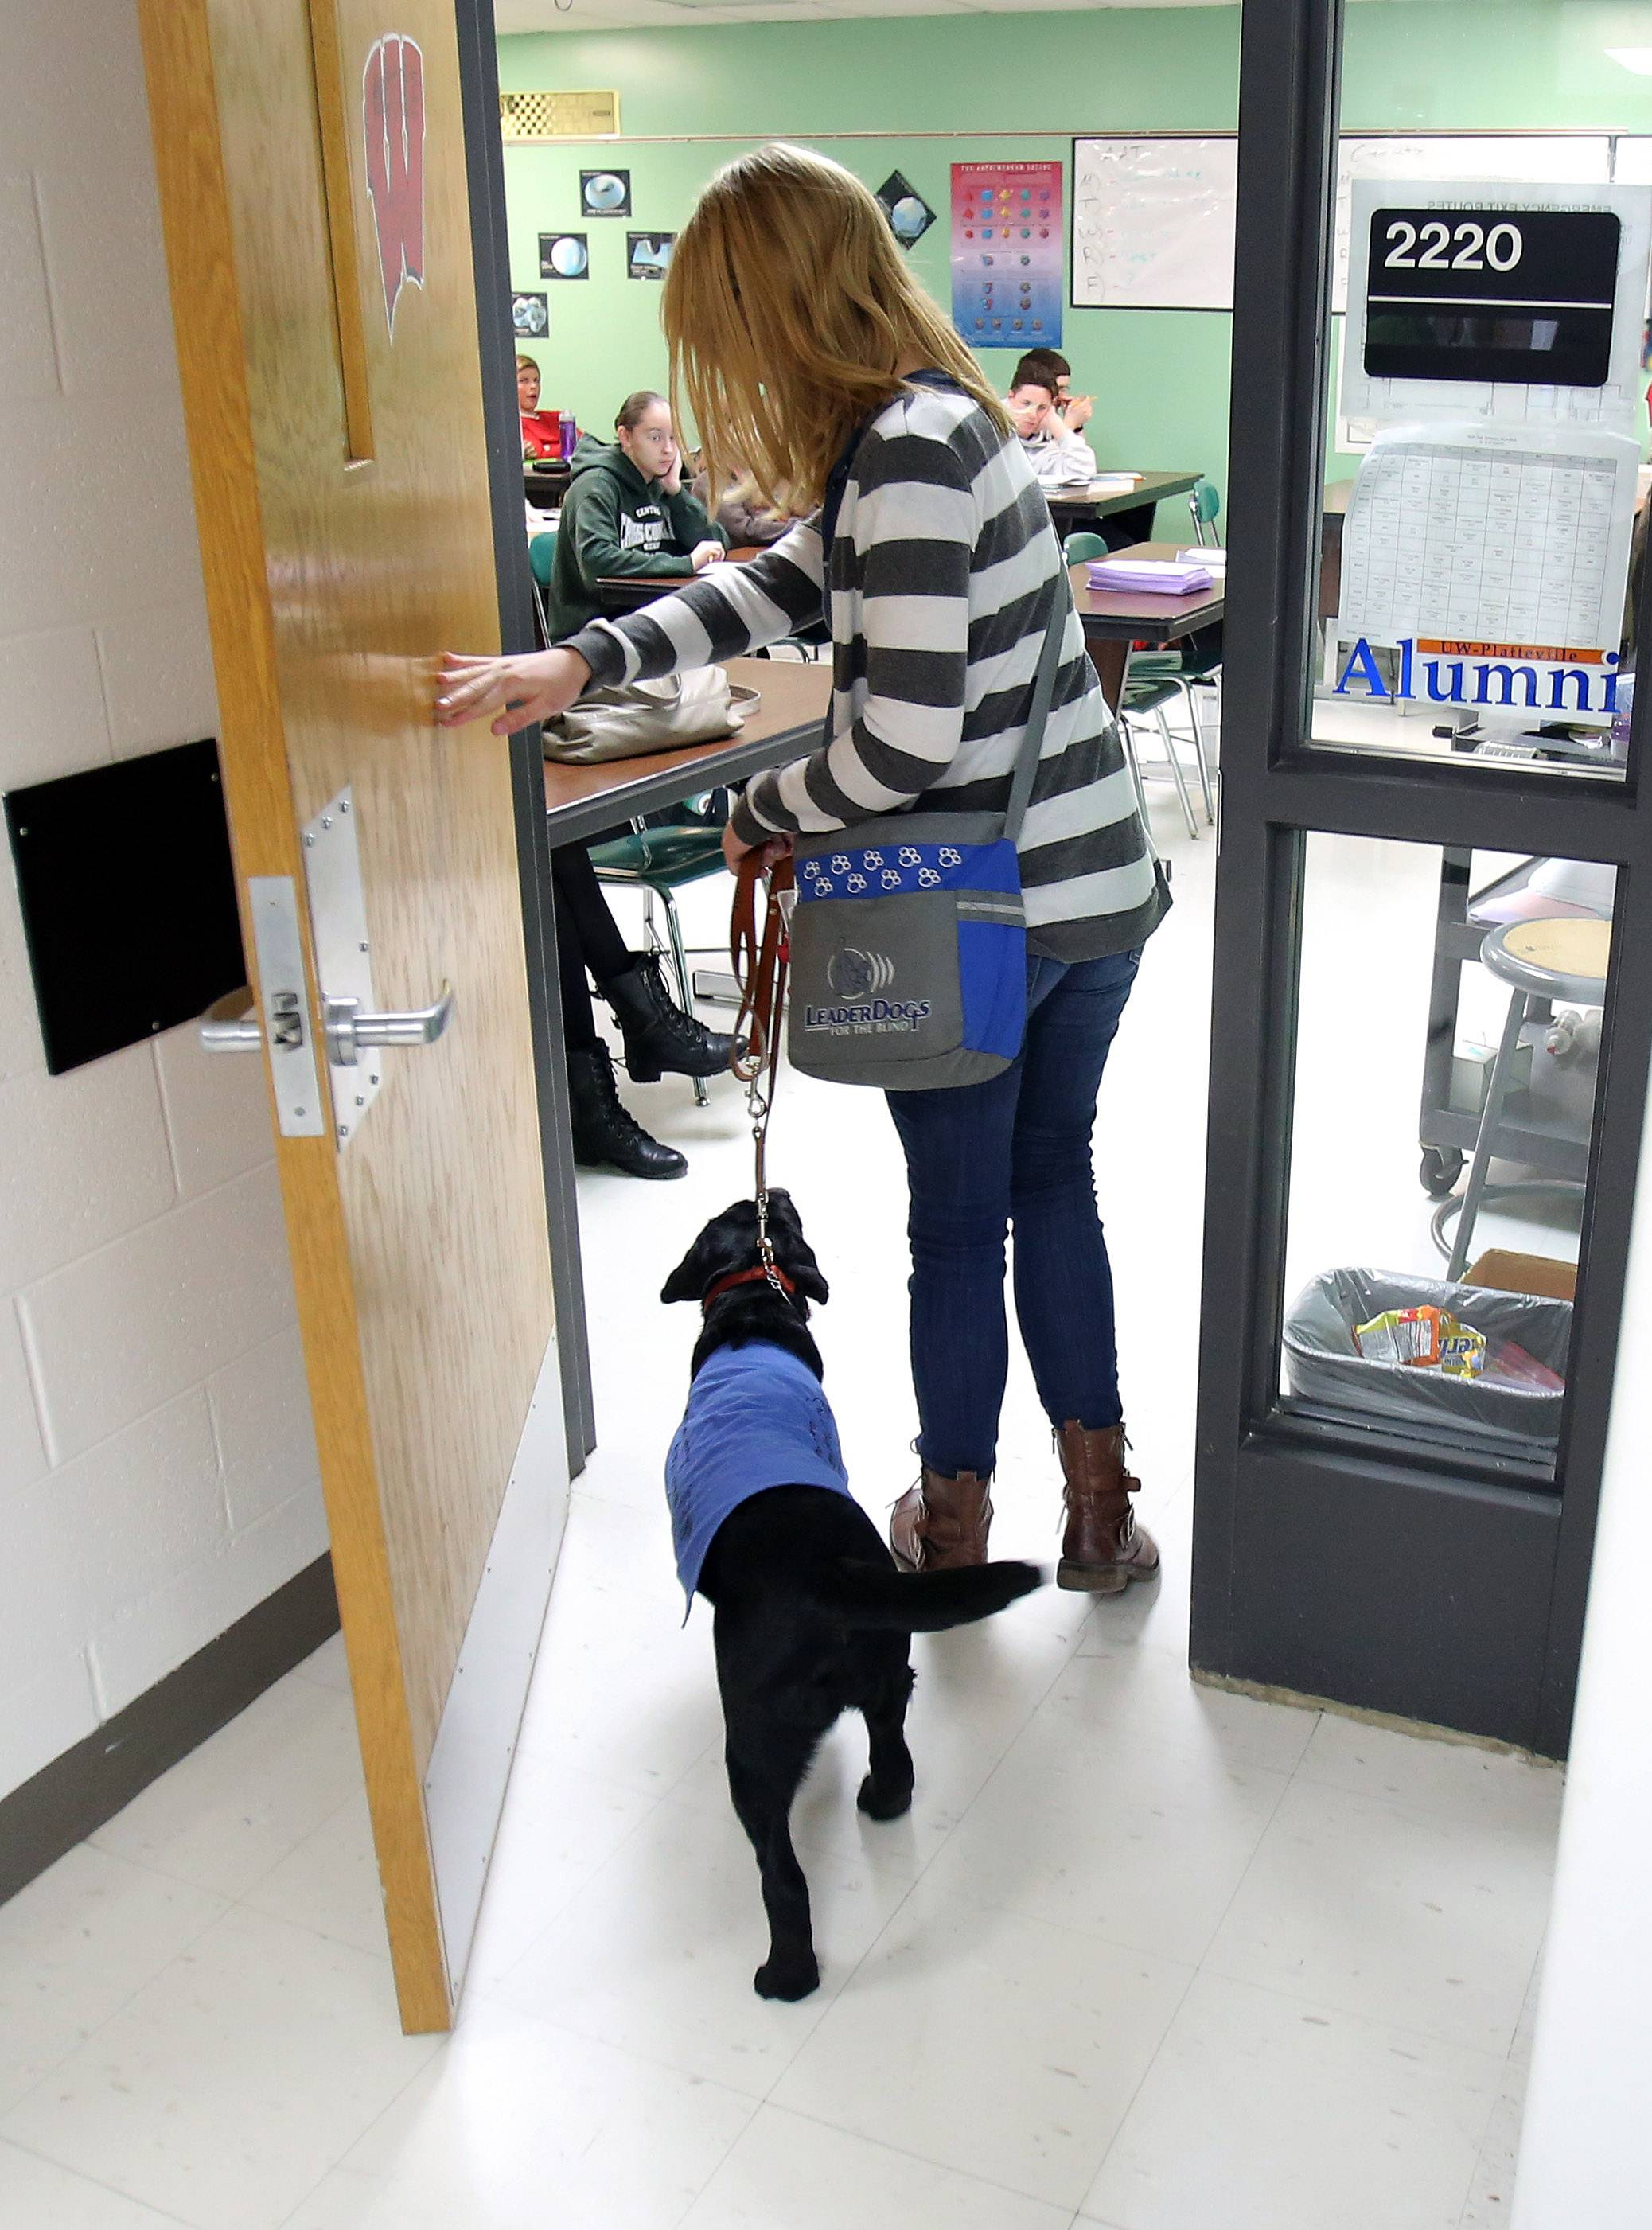 Junior Abby Perkowitz walks into class with 5-month-old Bailey, a service dog she is training at Grayslake Central High School.